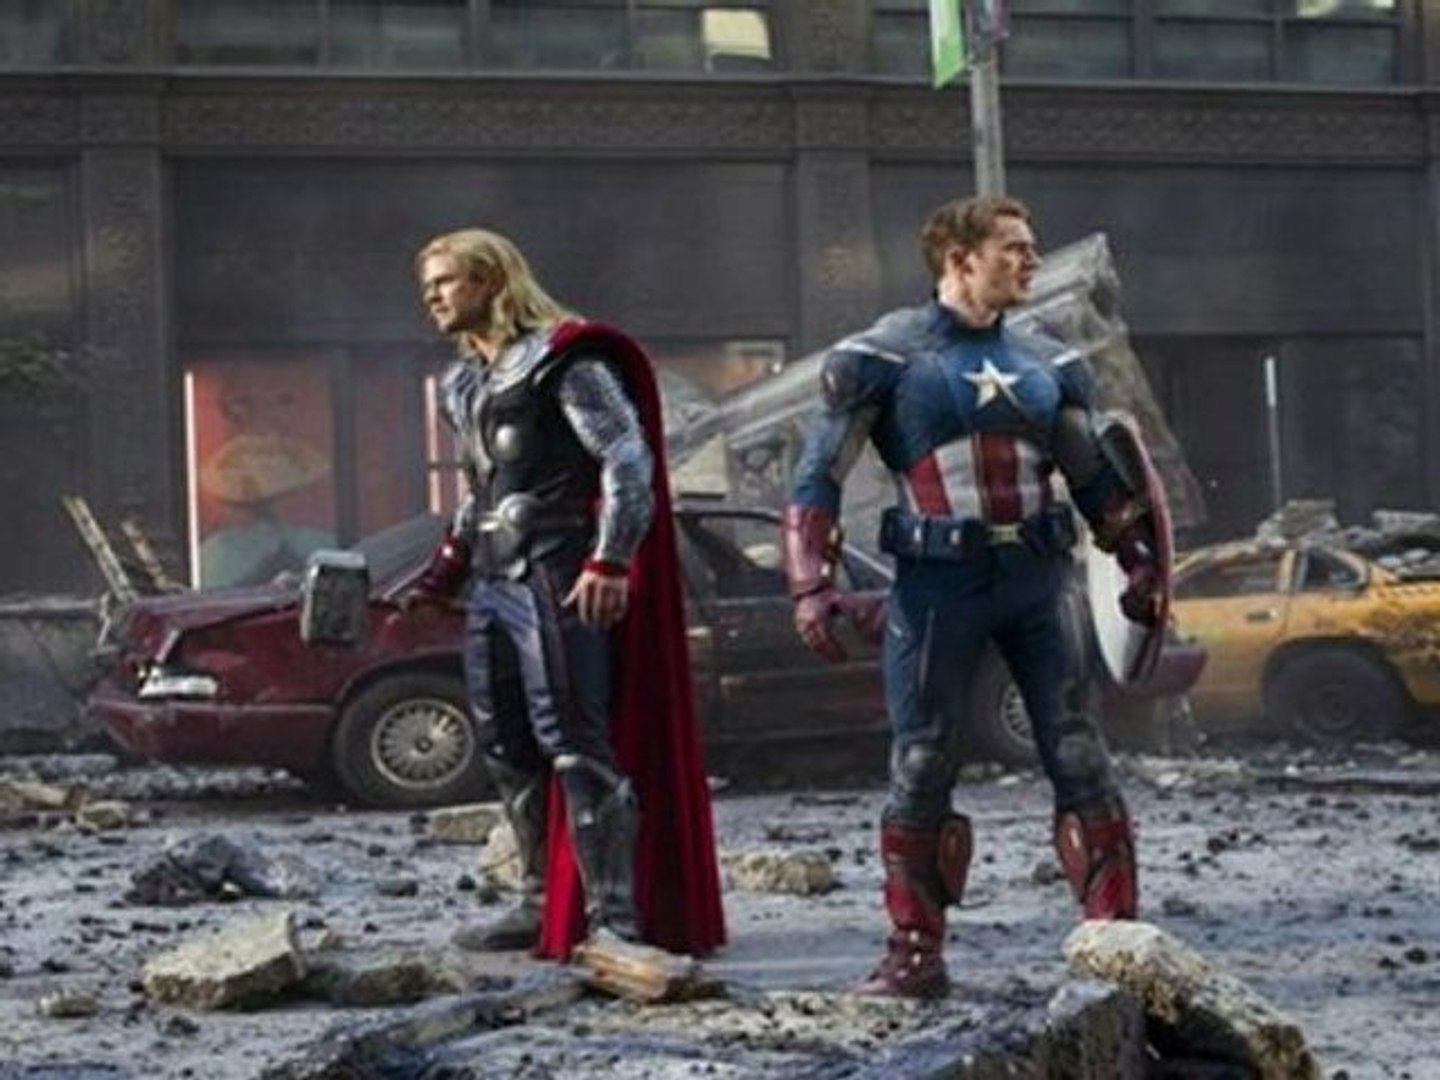 Download The Avengers 2012 Movie Free HD Full Movie - The Avengers ****emble Full Movie